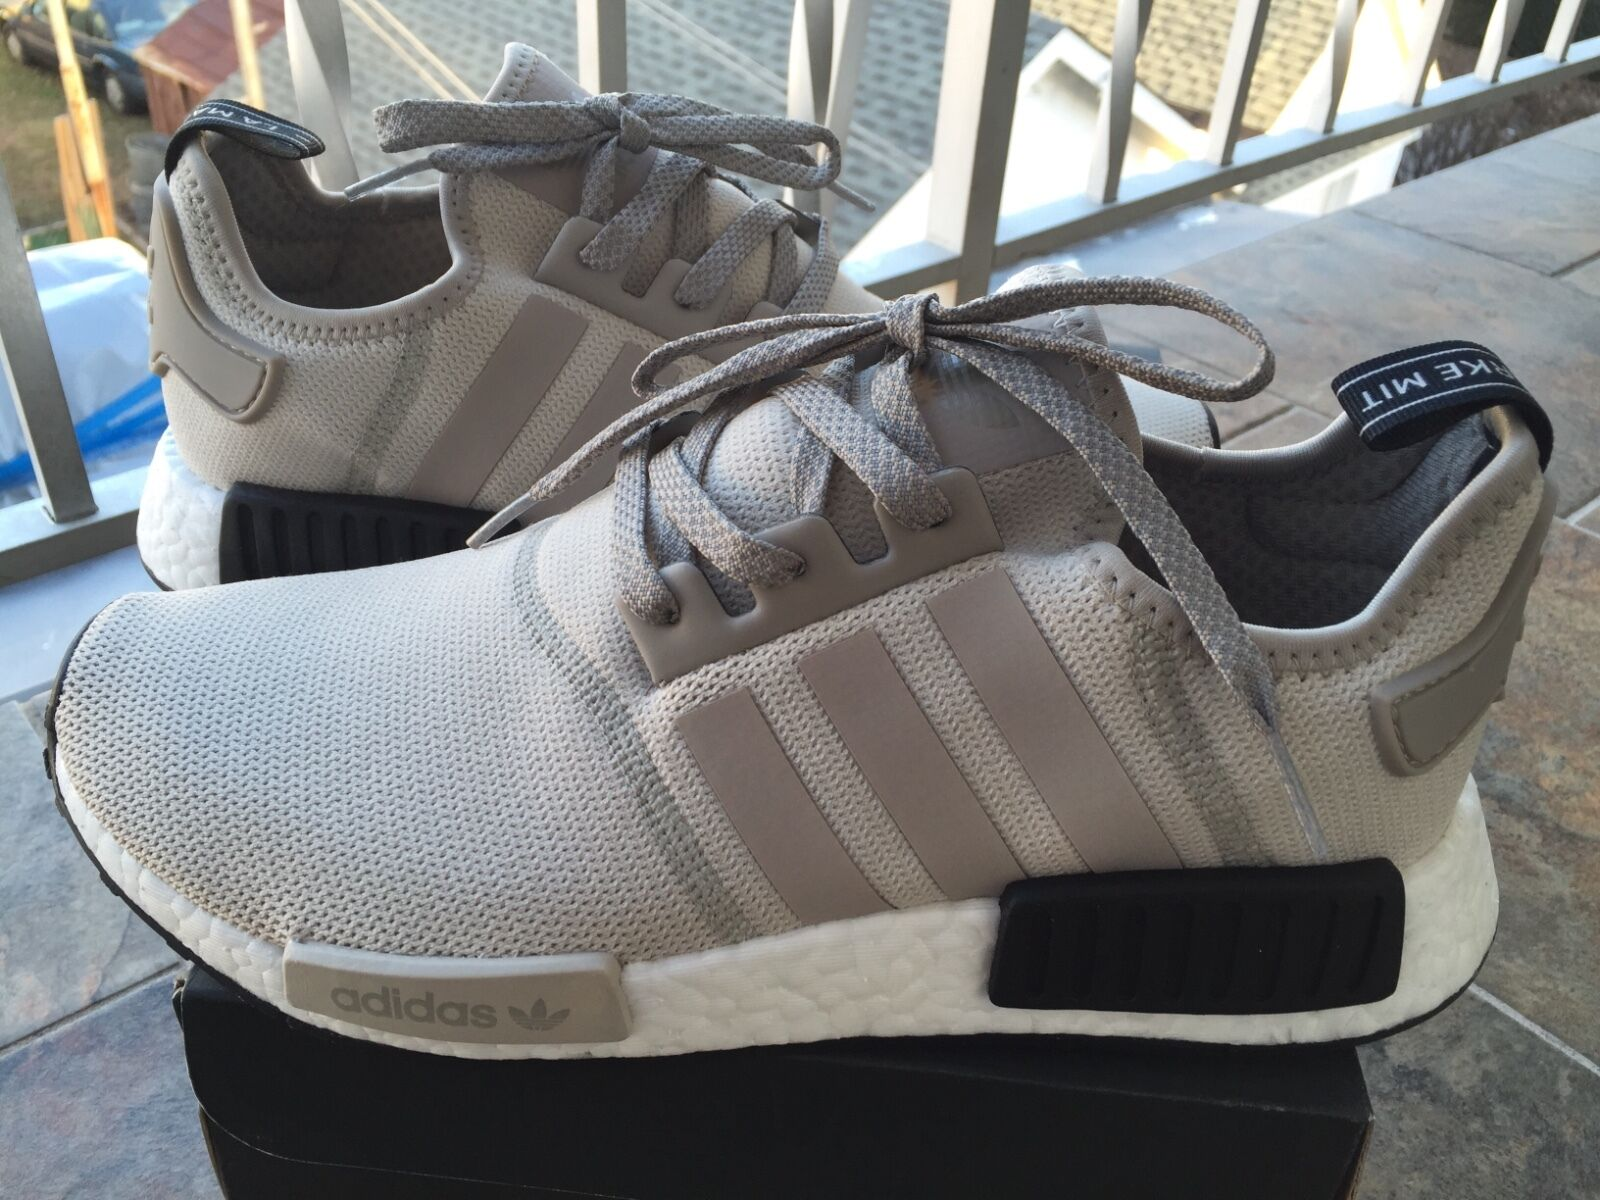 Adidas NMD_R1 Runner Nomad Boost  S76848 Tan Off White Cream sz 8-13